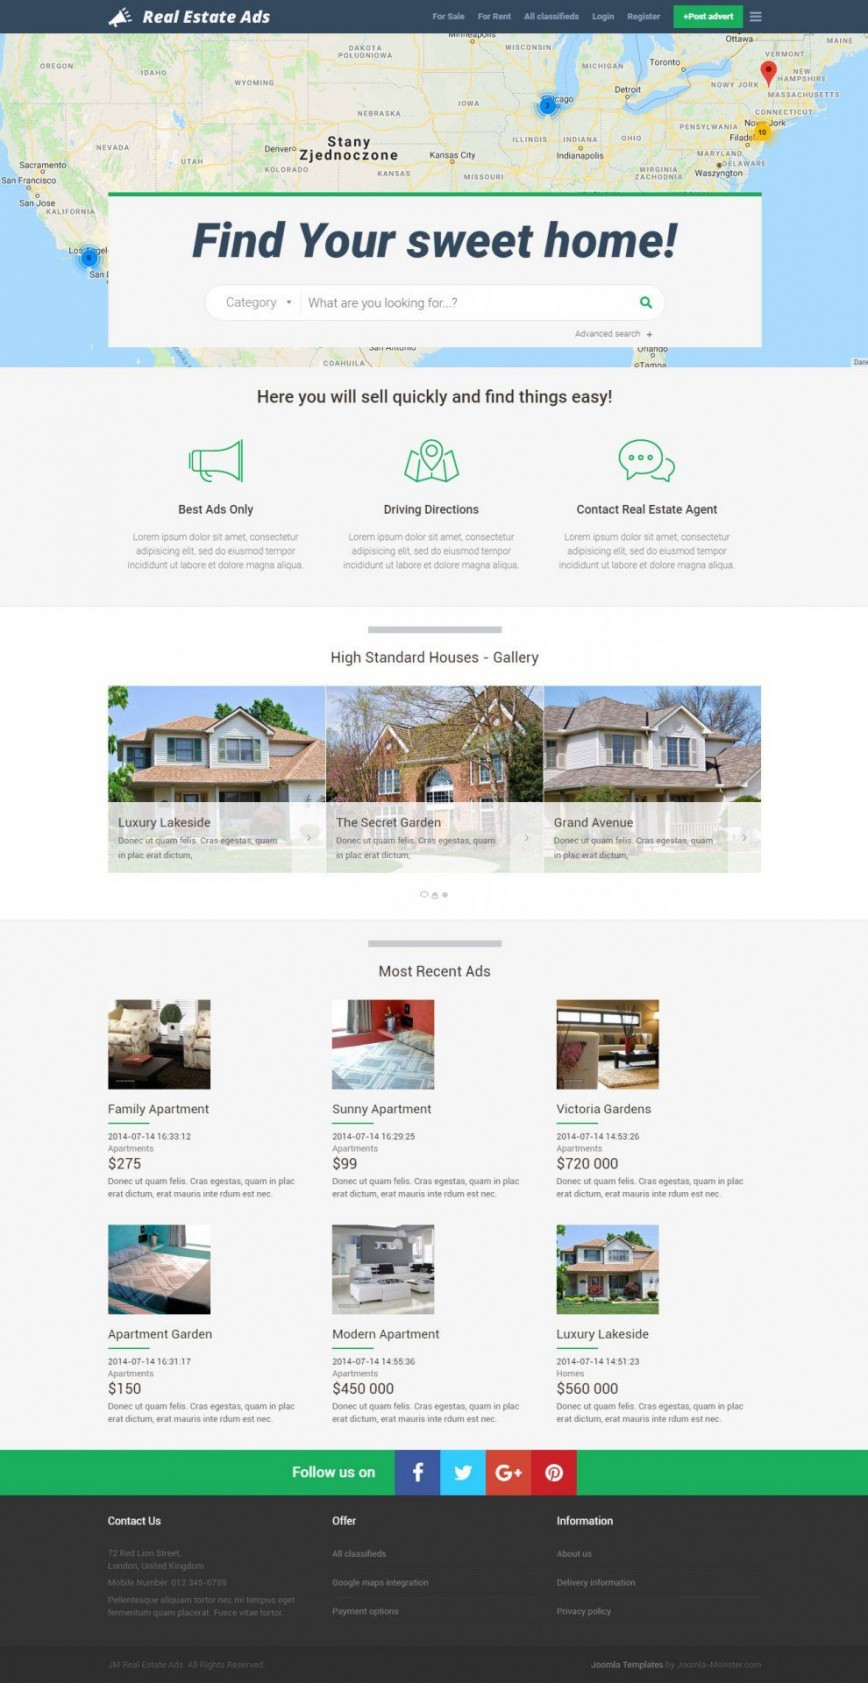 005 Impressive Real Estate Ad Template High Resolution  Templates Listing Description Commercial Free Download